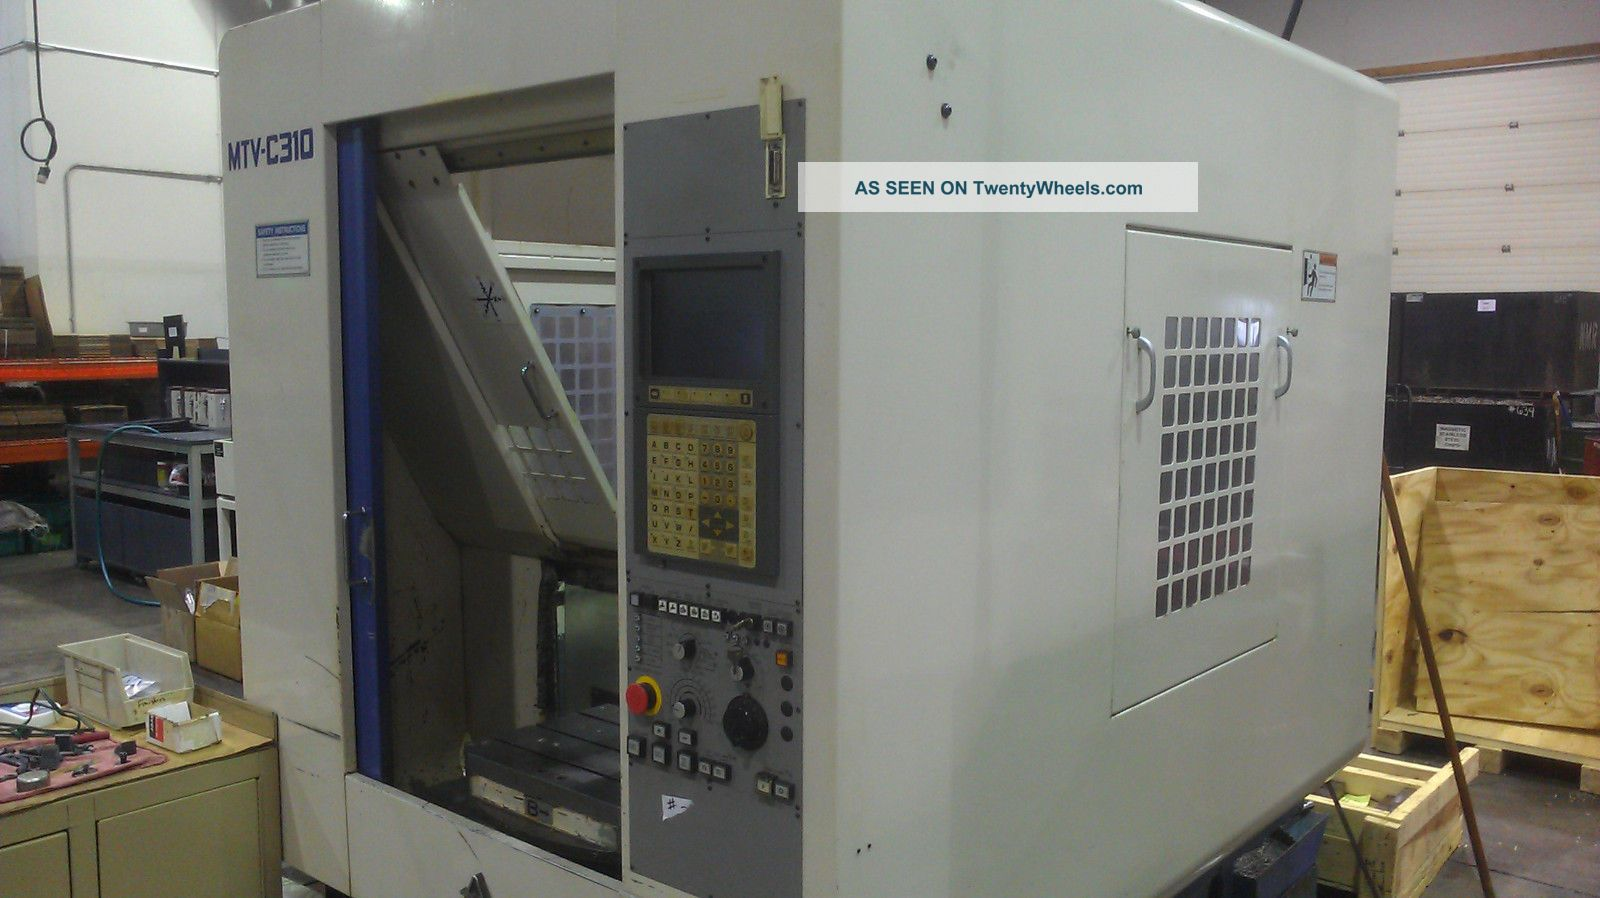 Miyano Mtv - C310 : 3 - Axis Cnc Drilling And Tapping Machine W/ Rotating Work Table Drilling & Tapping Machines photo